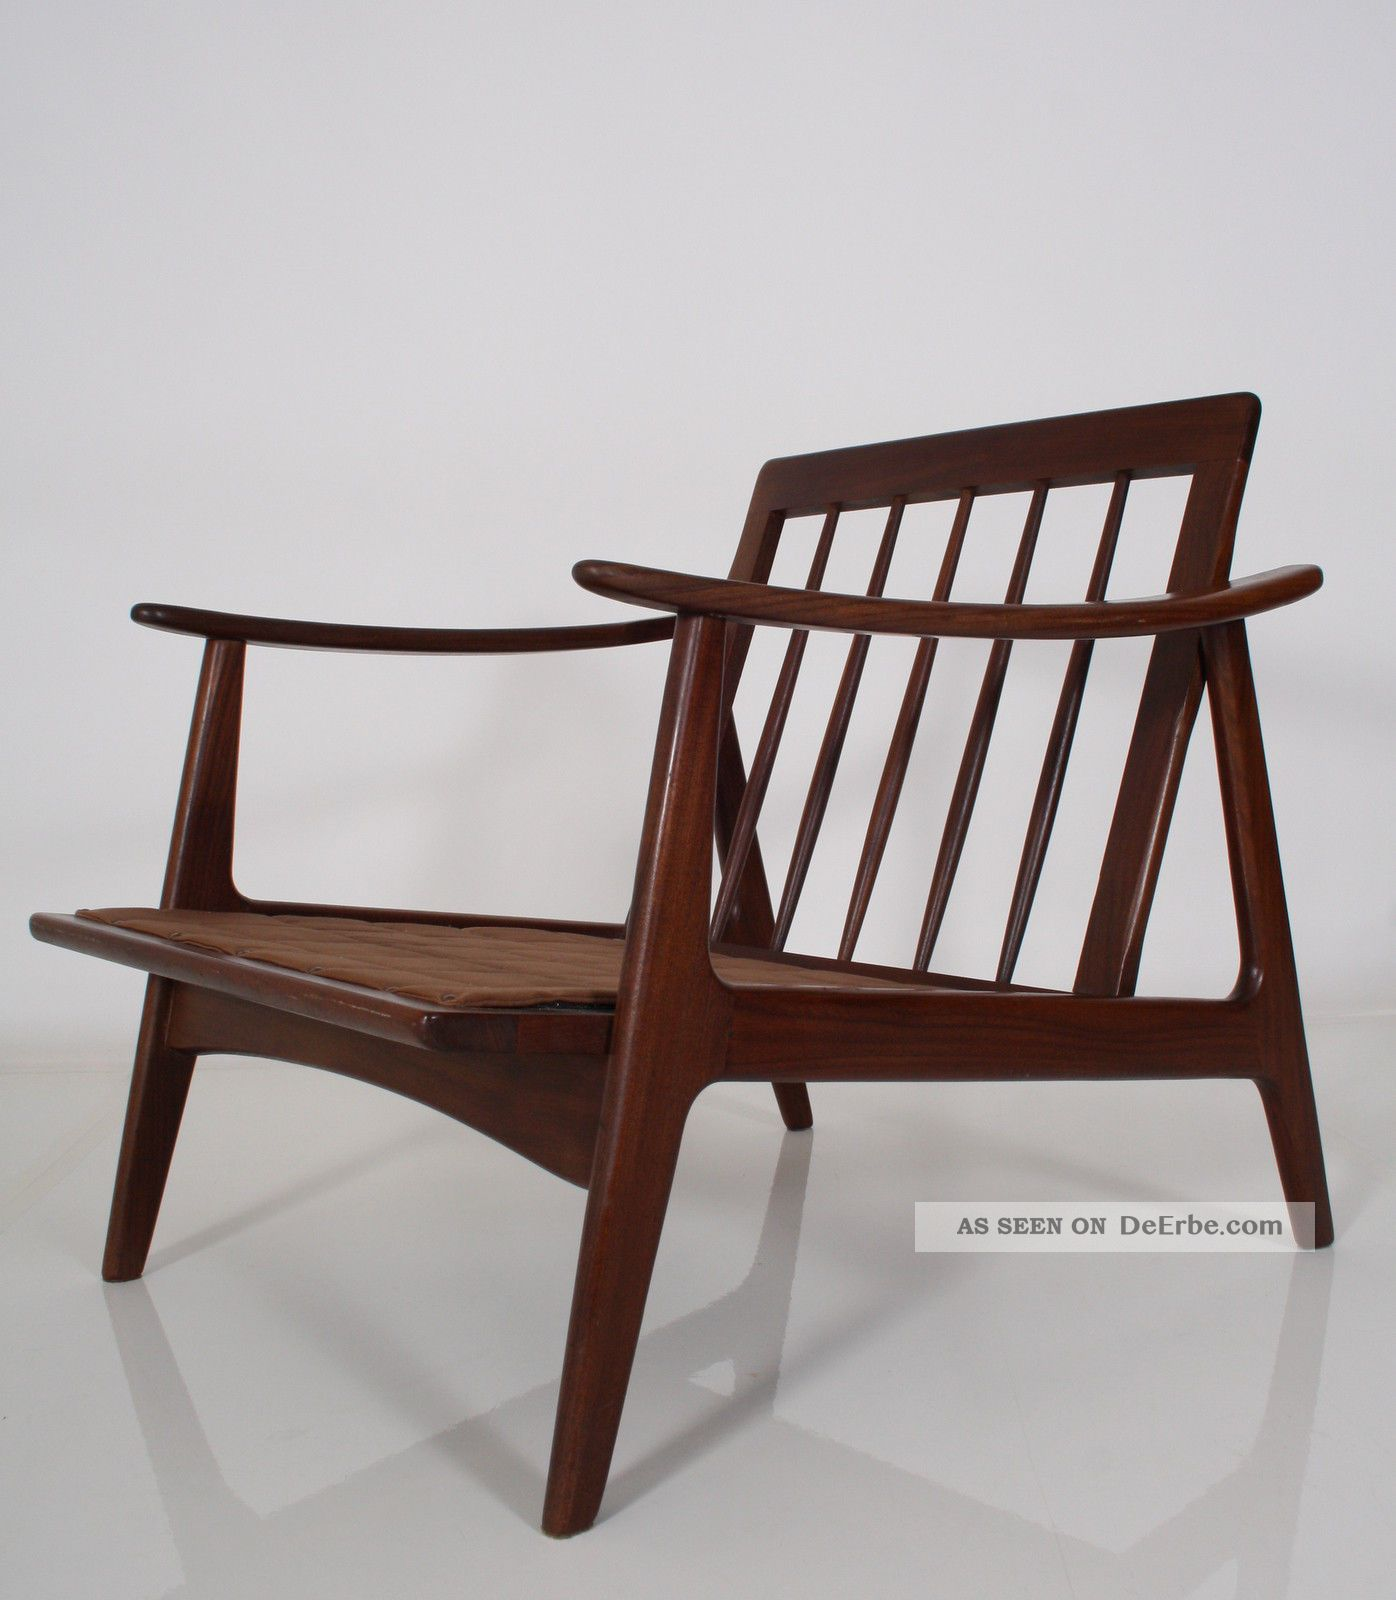 2 60er Teak Sessel Danish Design Top 60s Easy Chairs Fauteuil Poltrona